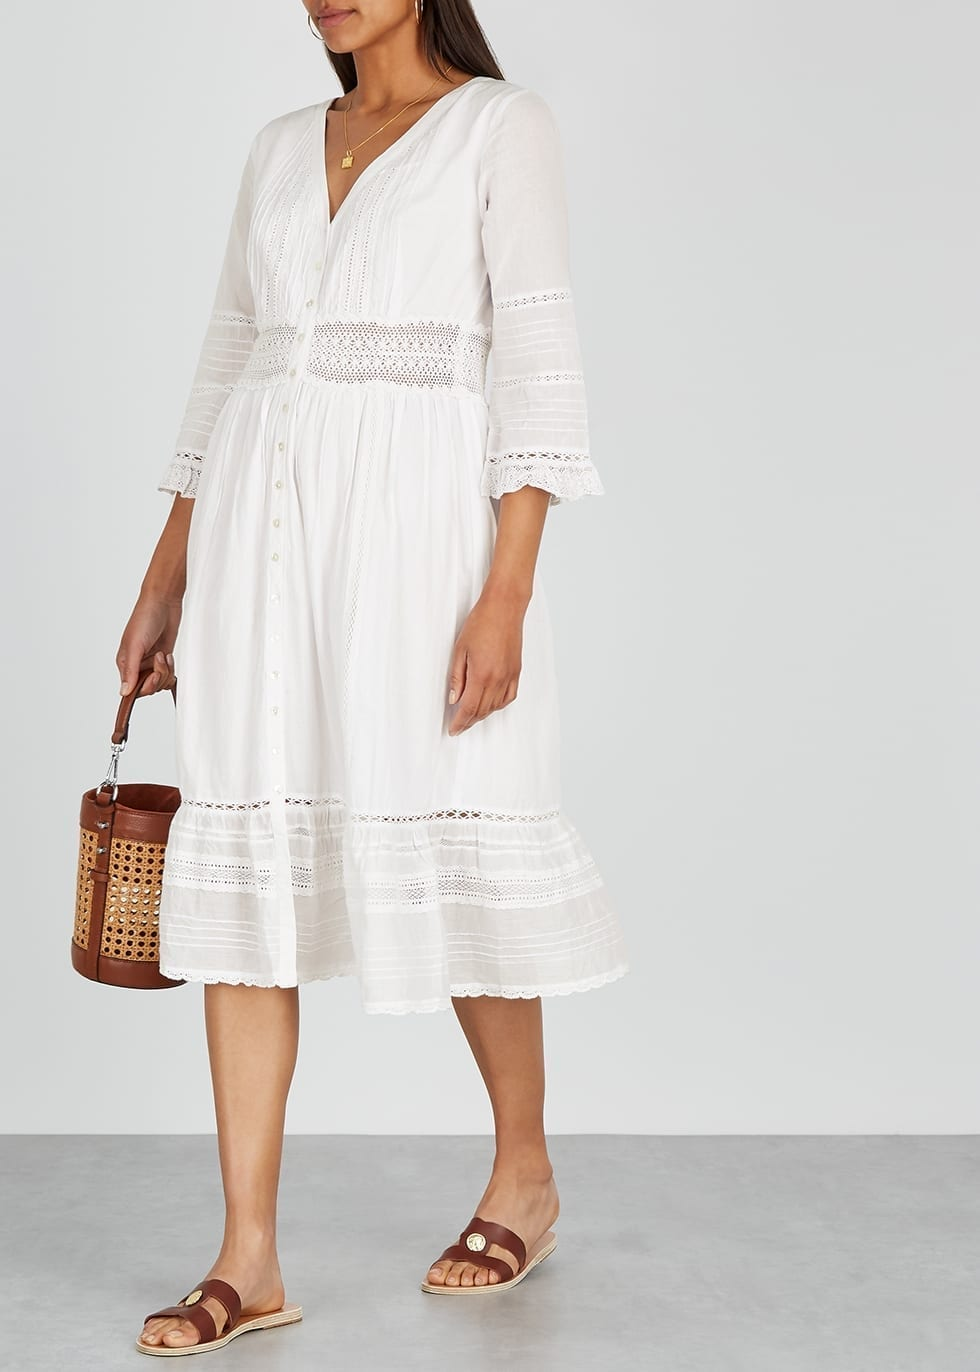 VELVET BY GRAHAM & SPENCER Angi Lace-trimmed Cotton Midi Dress